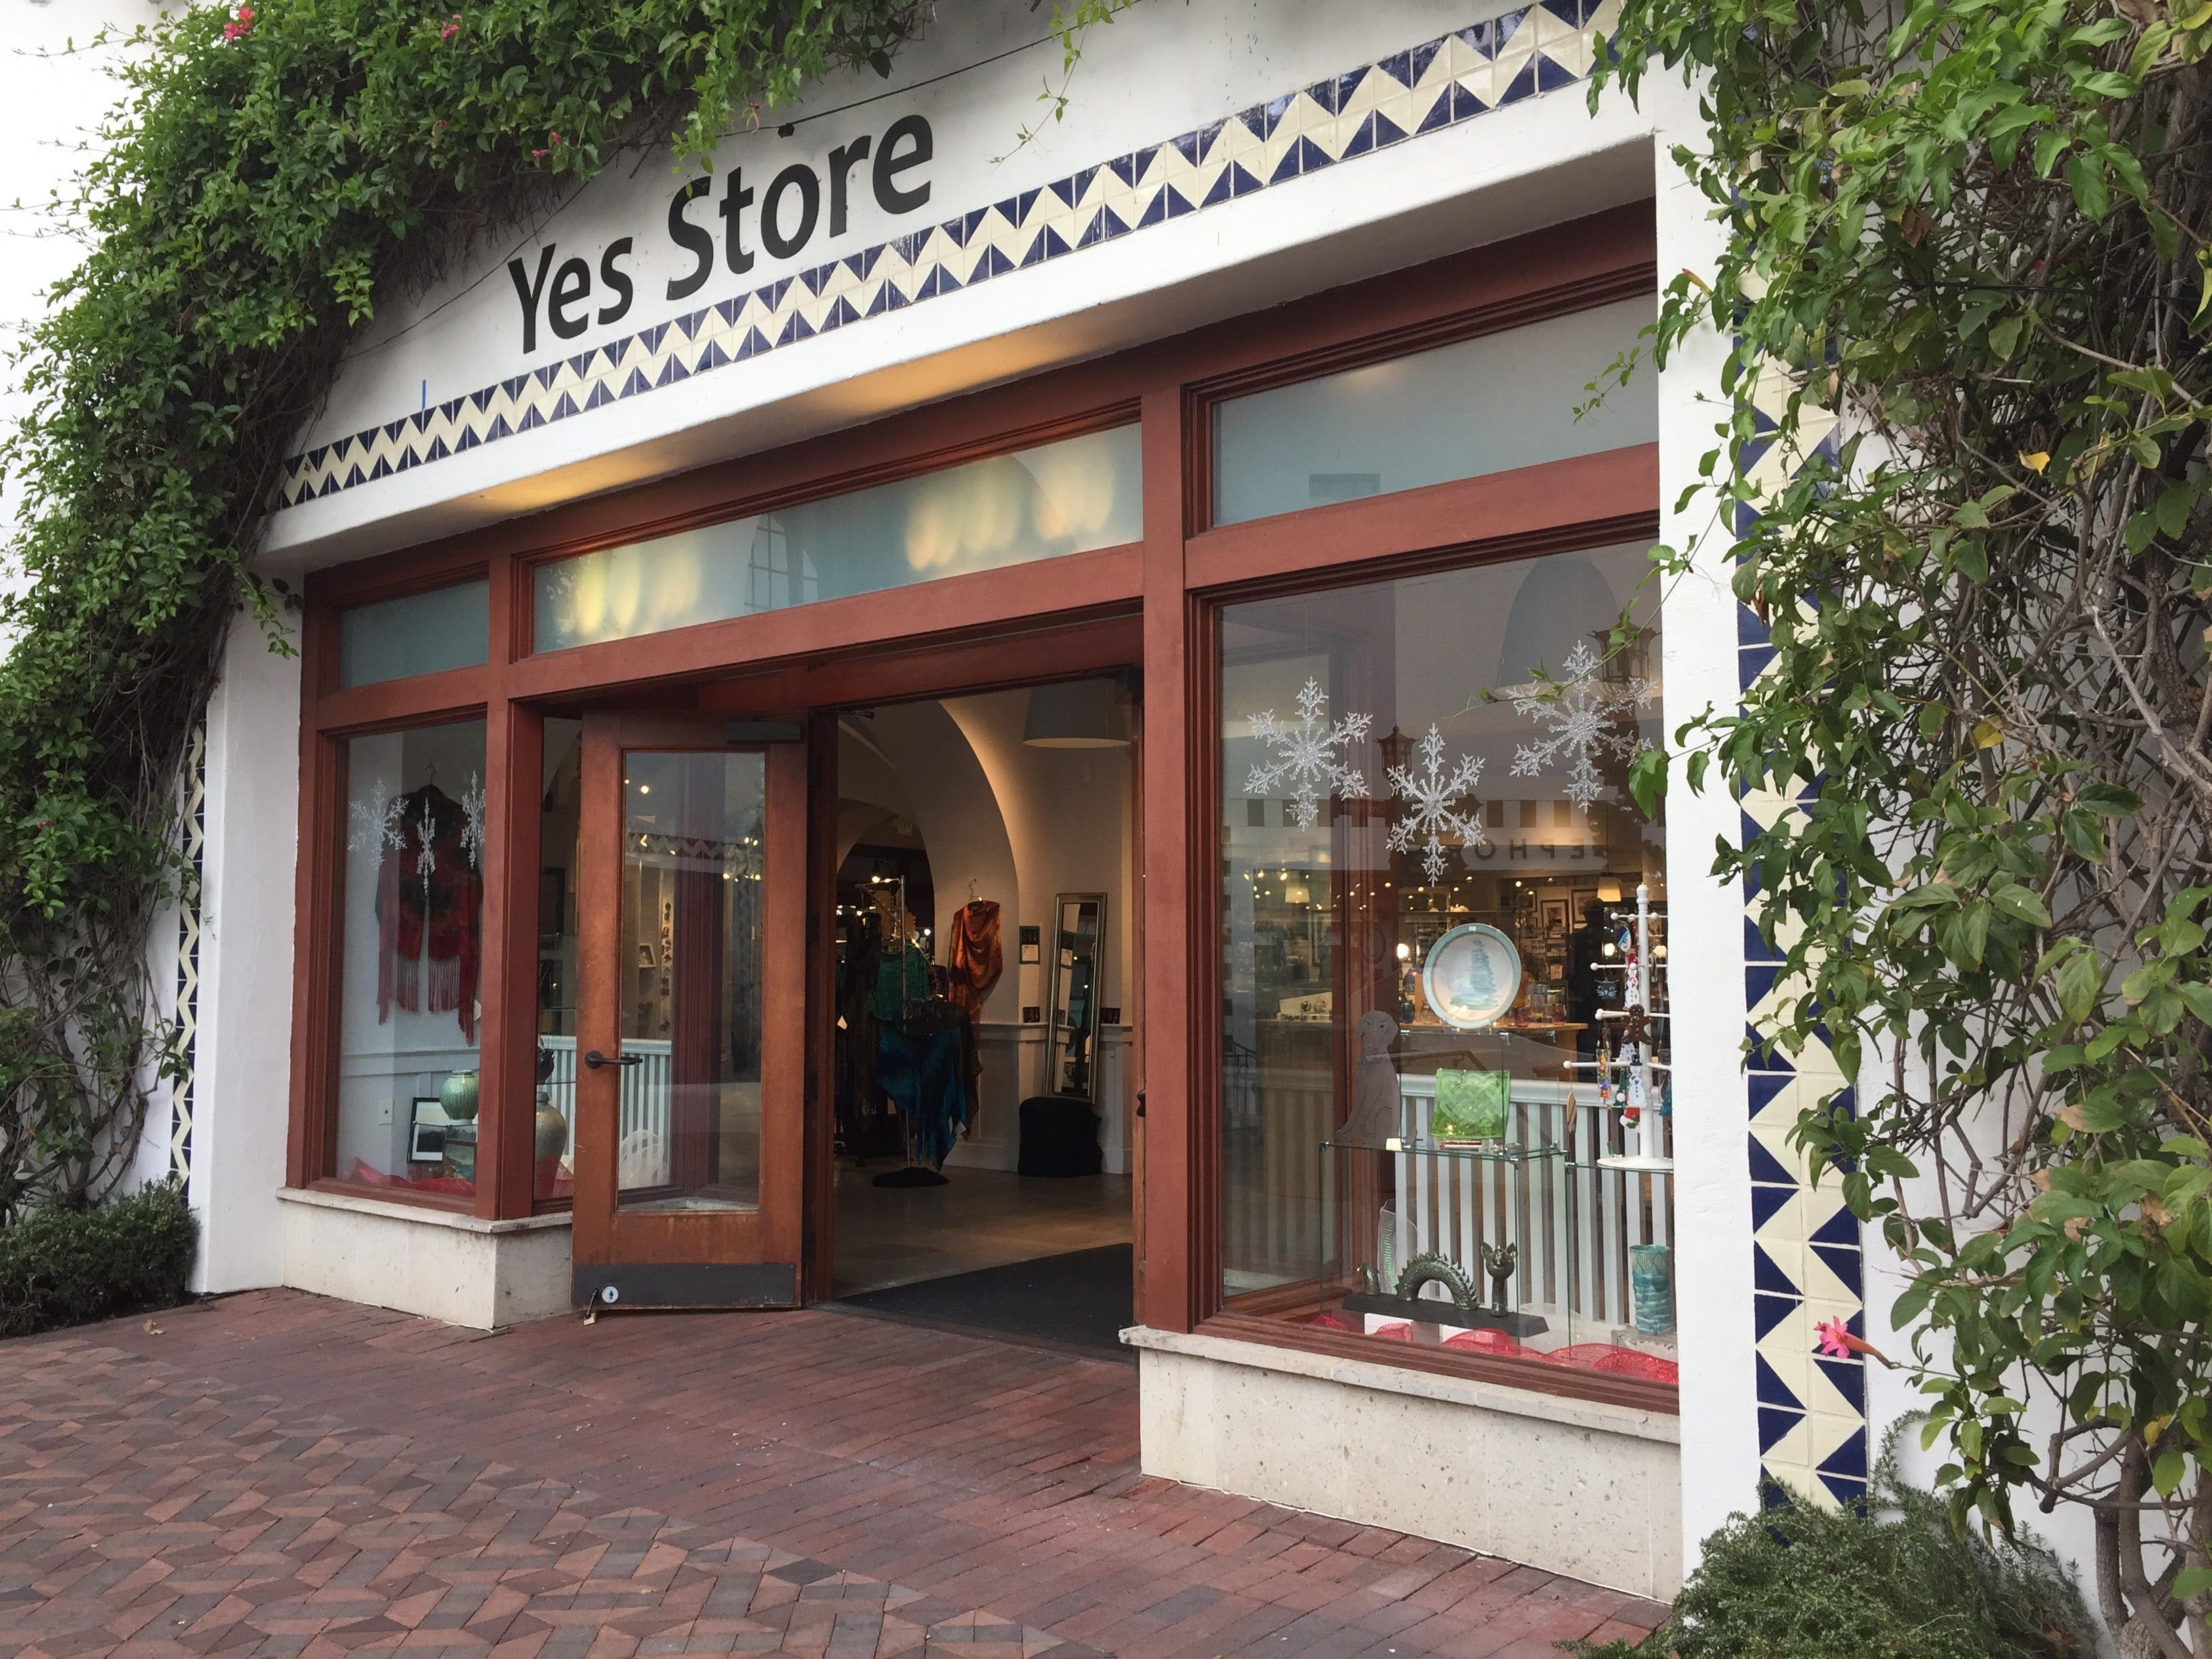 The Yes Store is one of the country's first craft pop-ups, setting up shop in downtown Santa Barbara, California, since 1968.